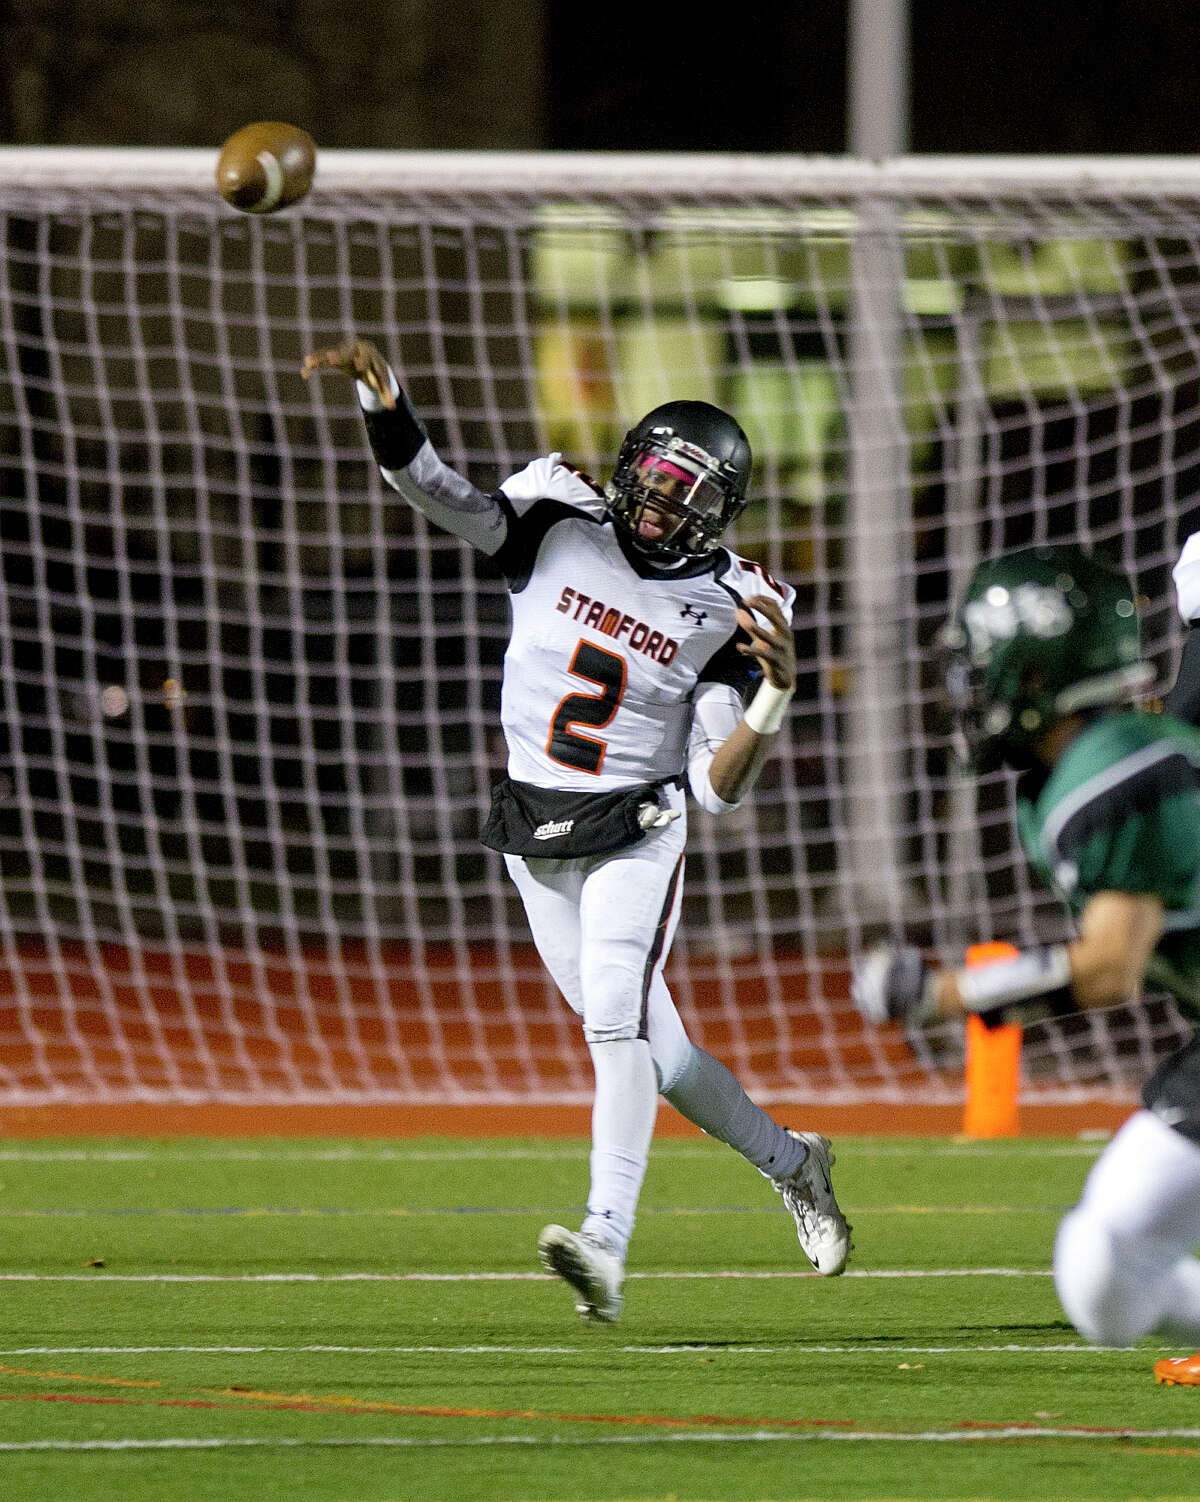 Stamford's Jalen Brown throws a pass during Friday's football game in Norwalk, Conn., on November 8, 2013.